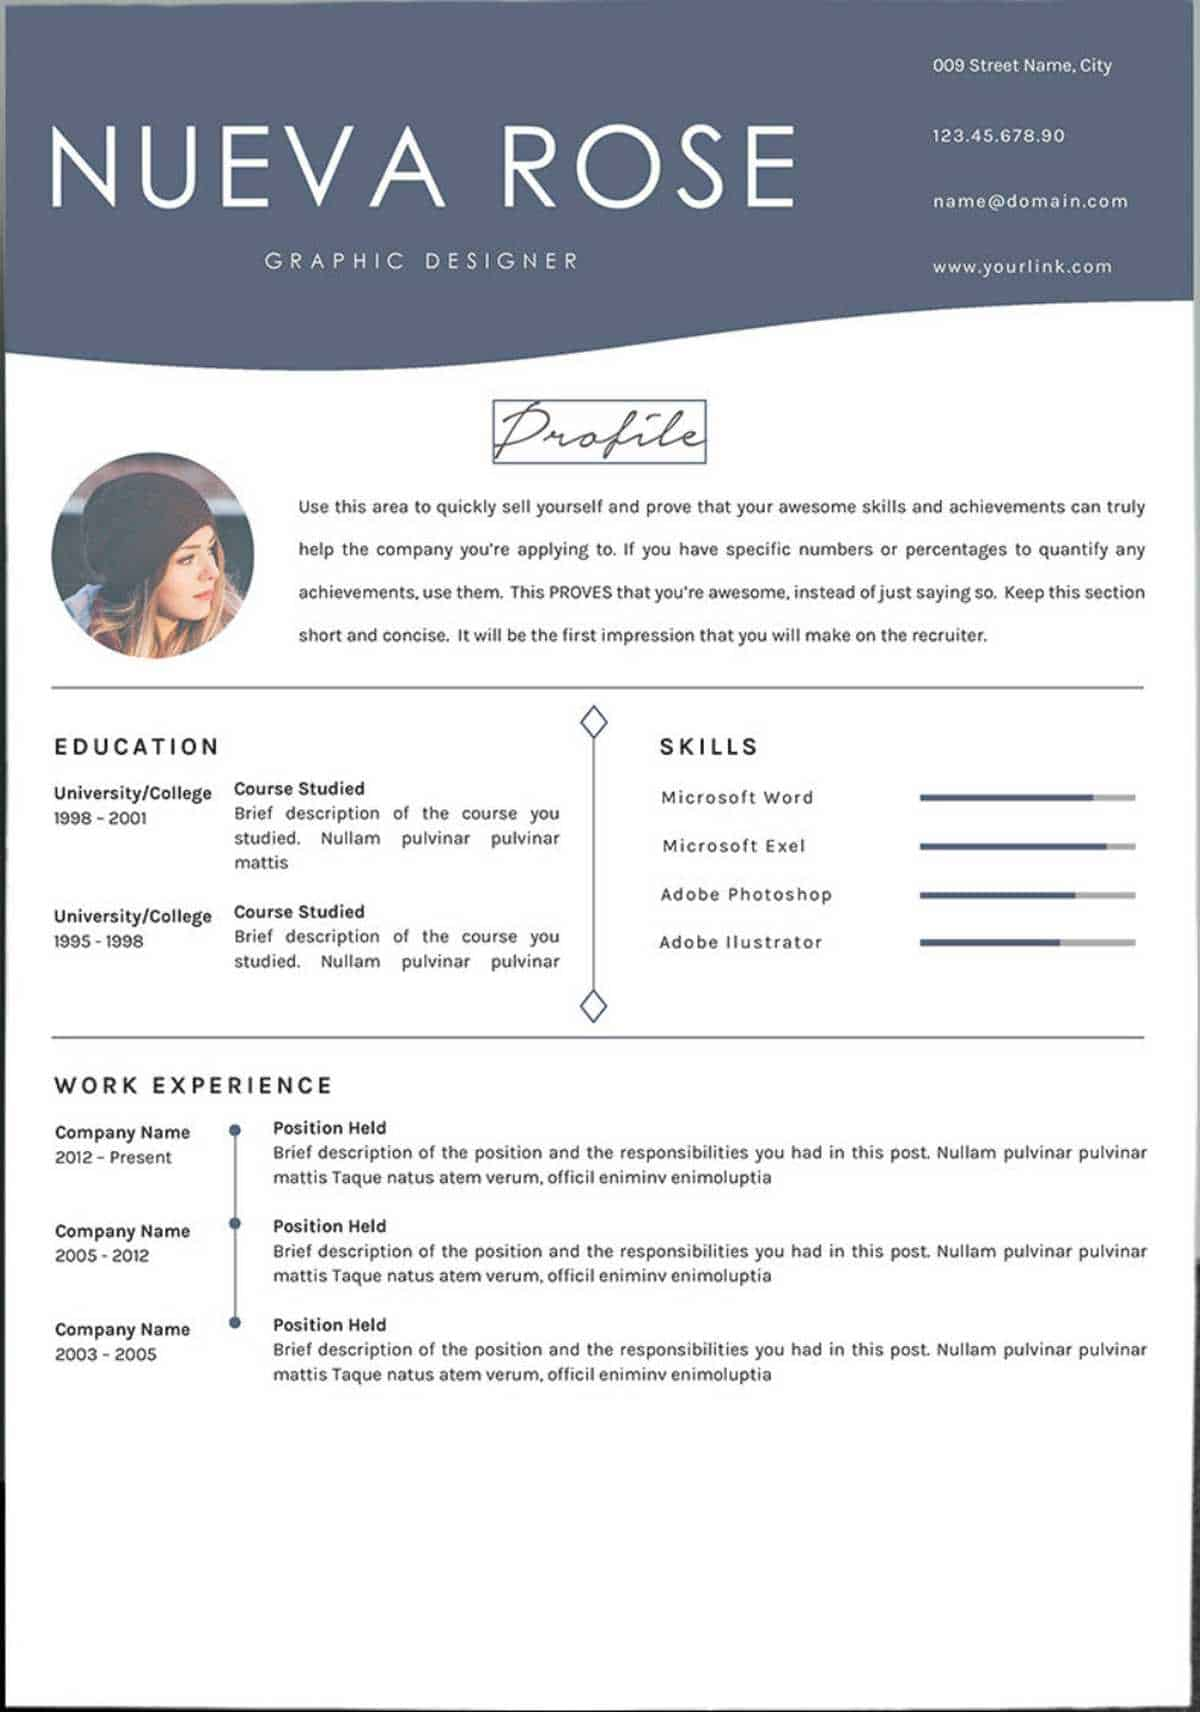 Nueva Rose | Google Docs Resume Templates [Downloadable PDFs] | Google Docs resume template free | templates for Google Docs